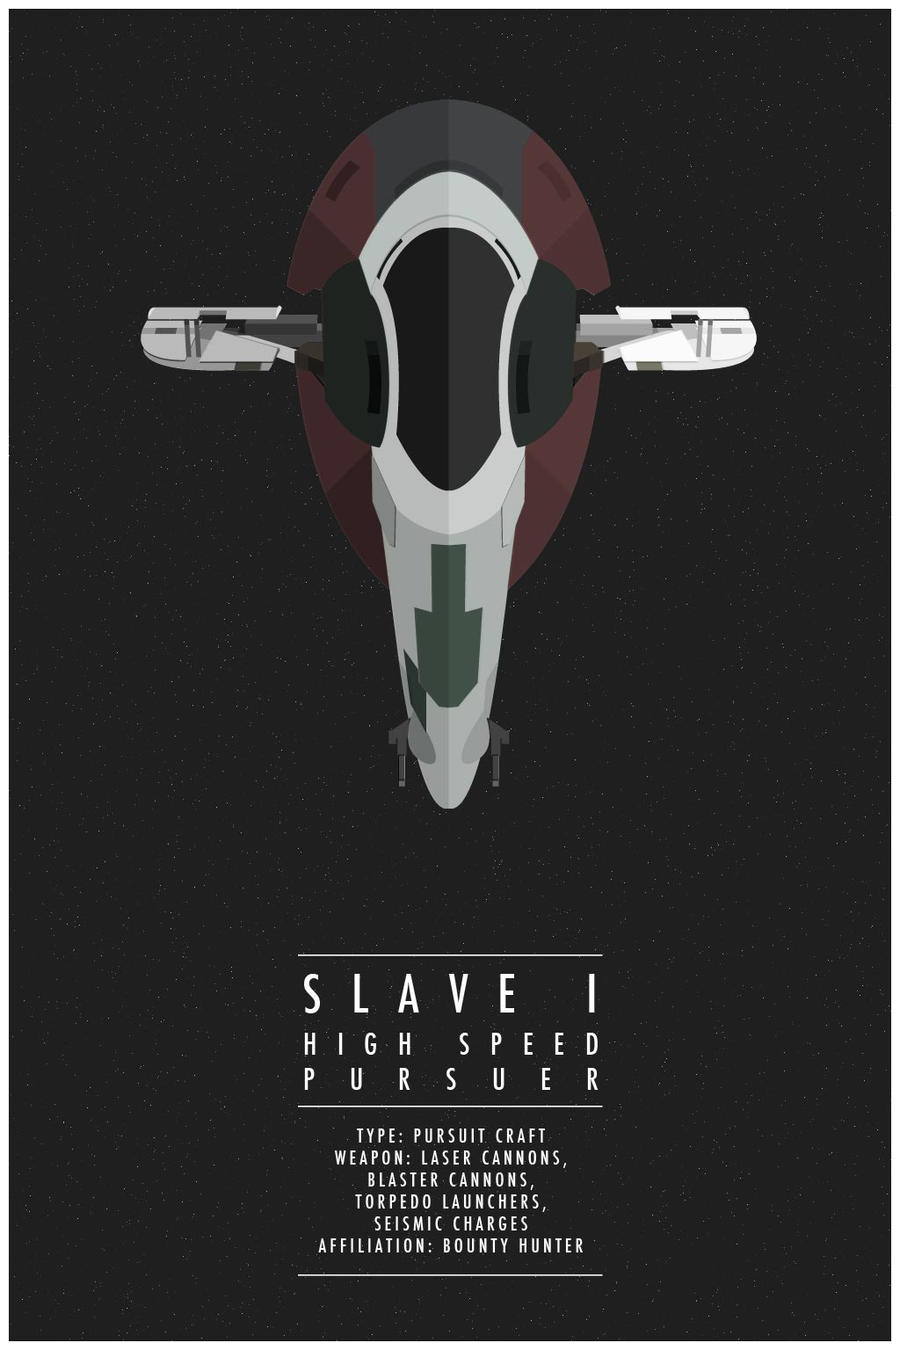 Slave I by WEAPONIX